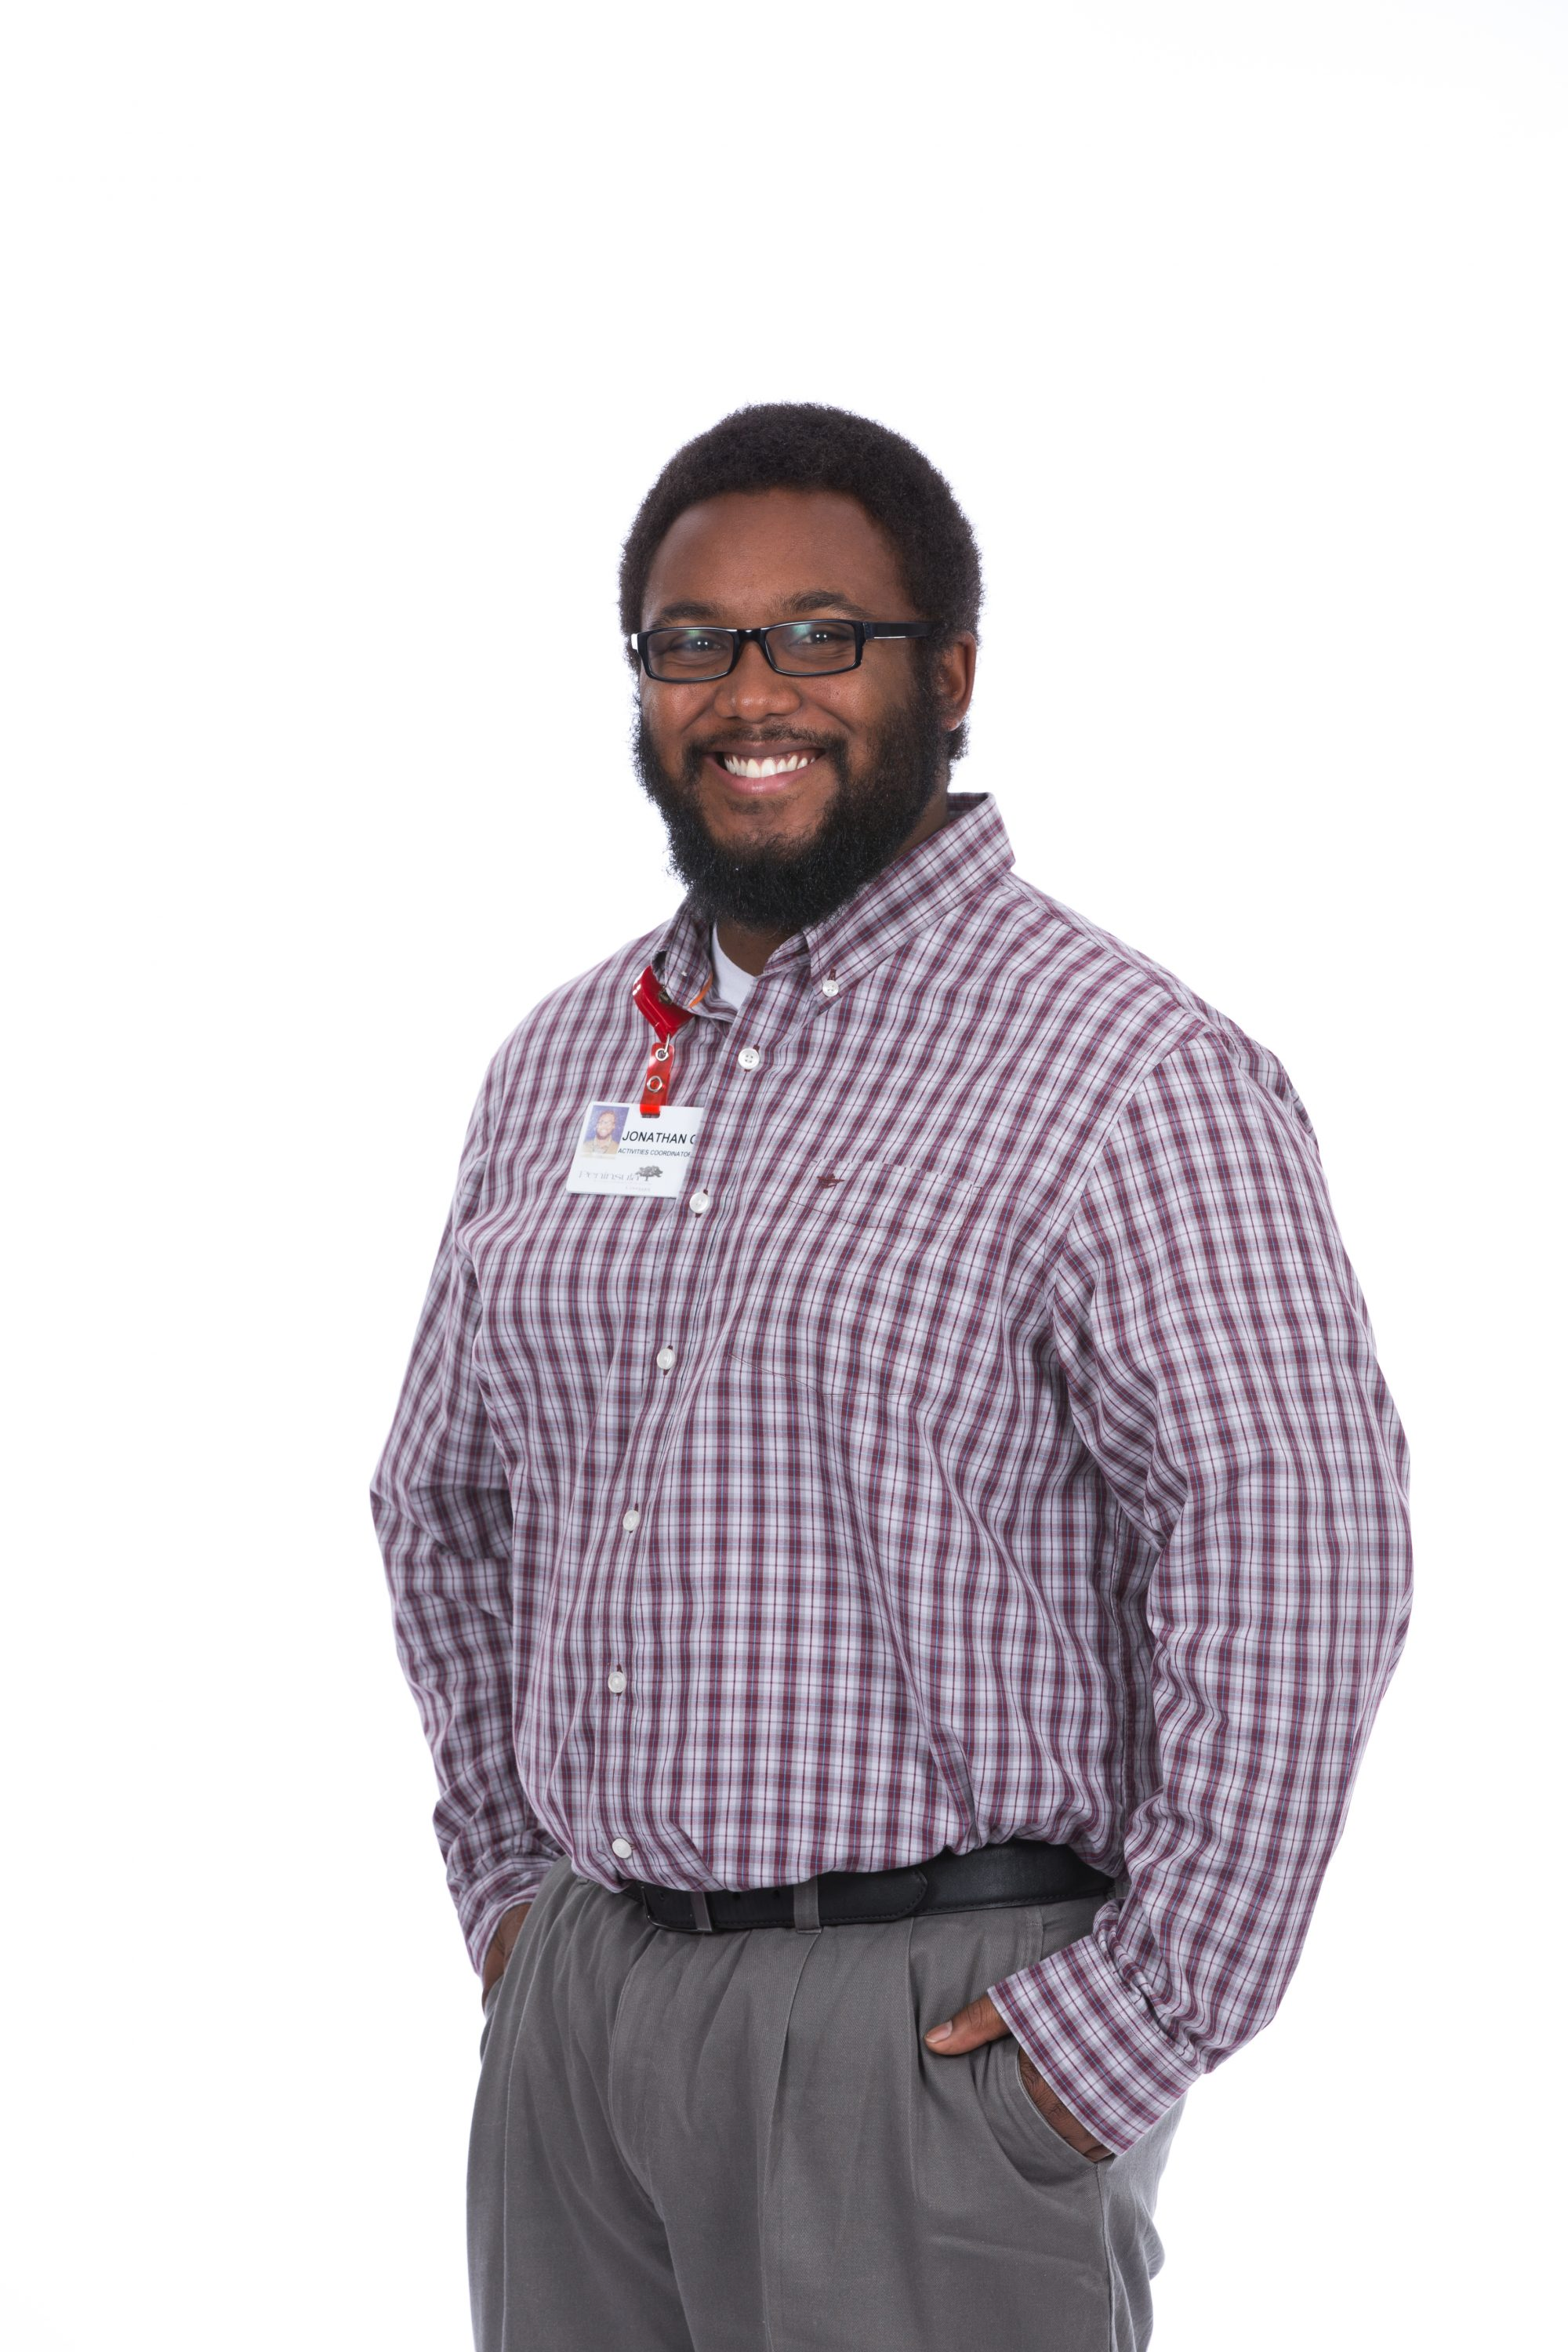 Staff Feature Friday